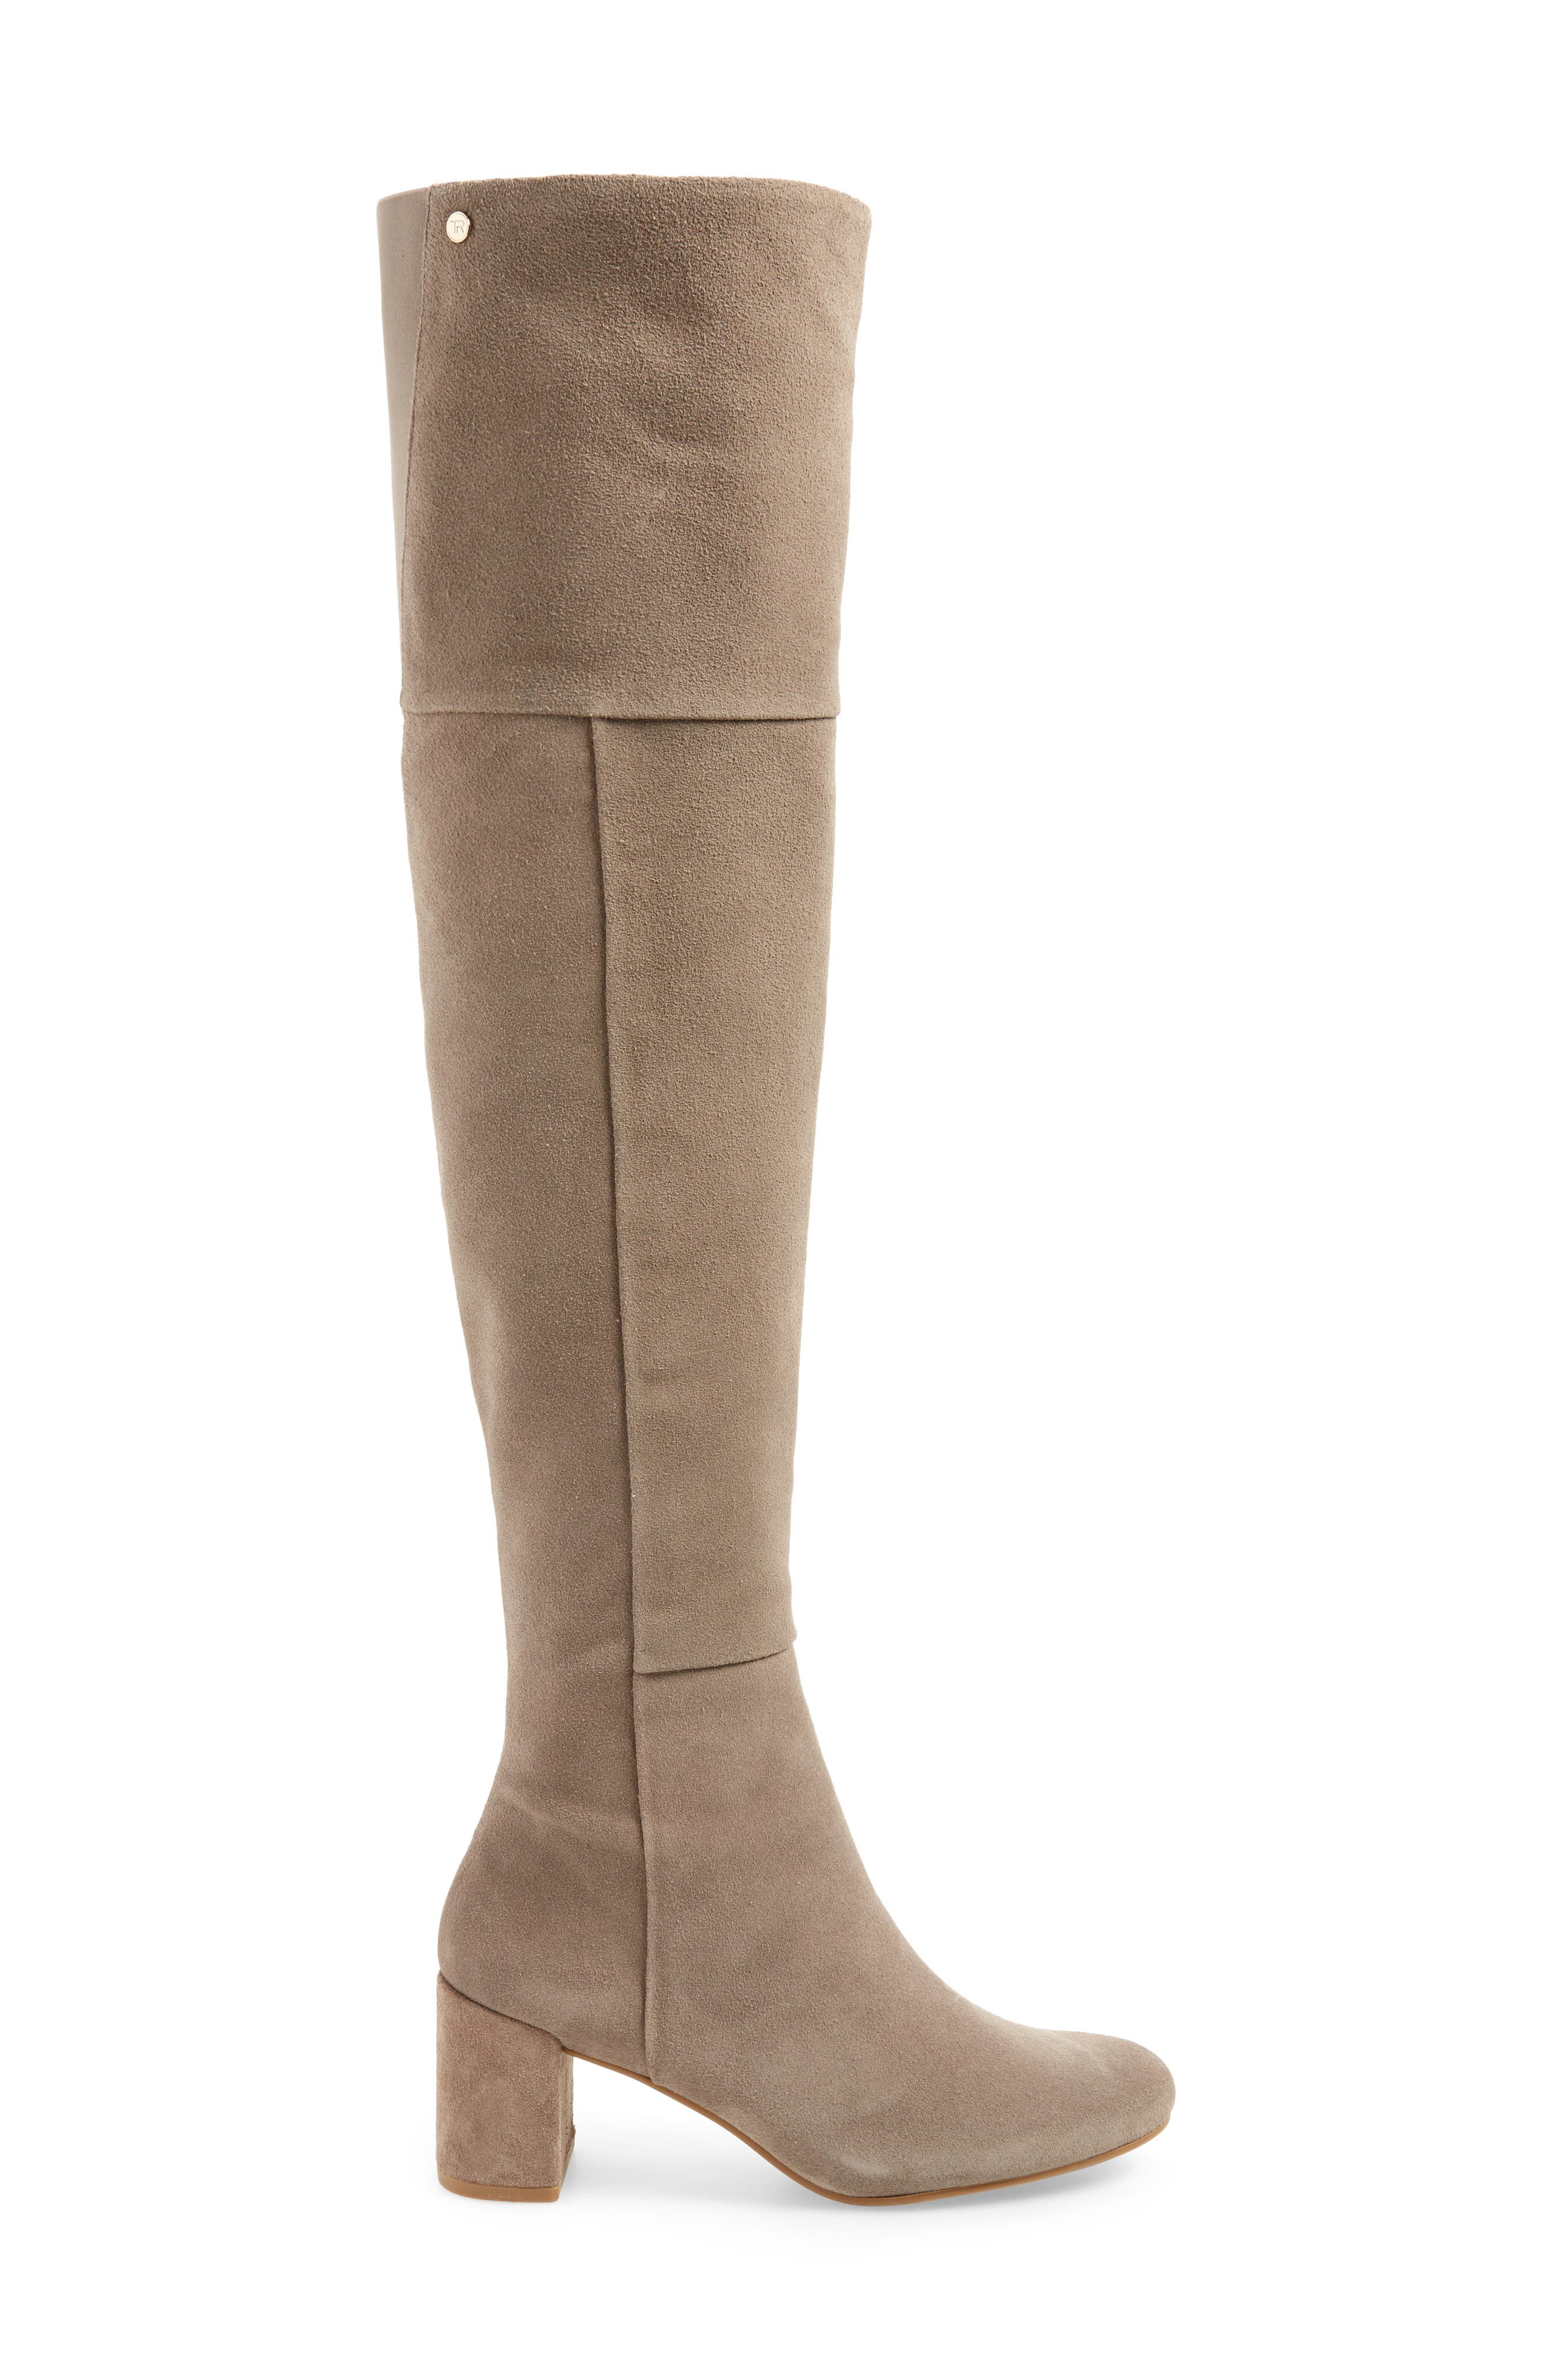 Catherine Over the Knee Boot,                             Alternate thumbnail 3, color,                             Grey Suede